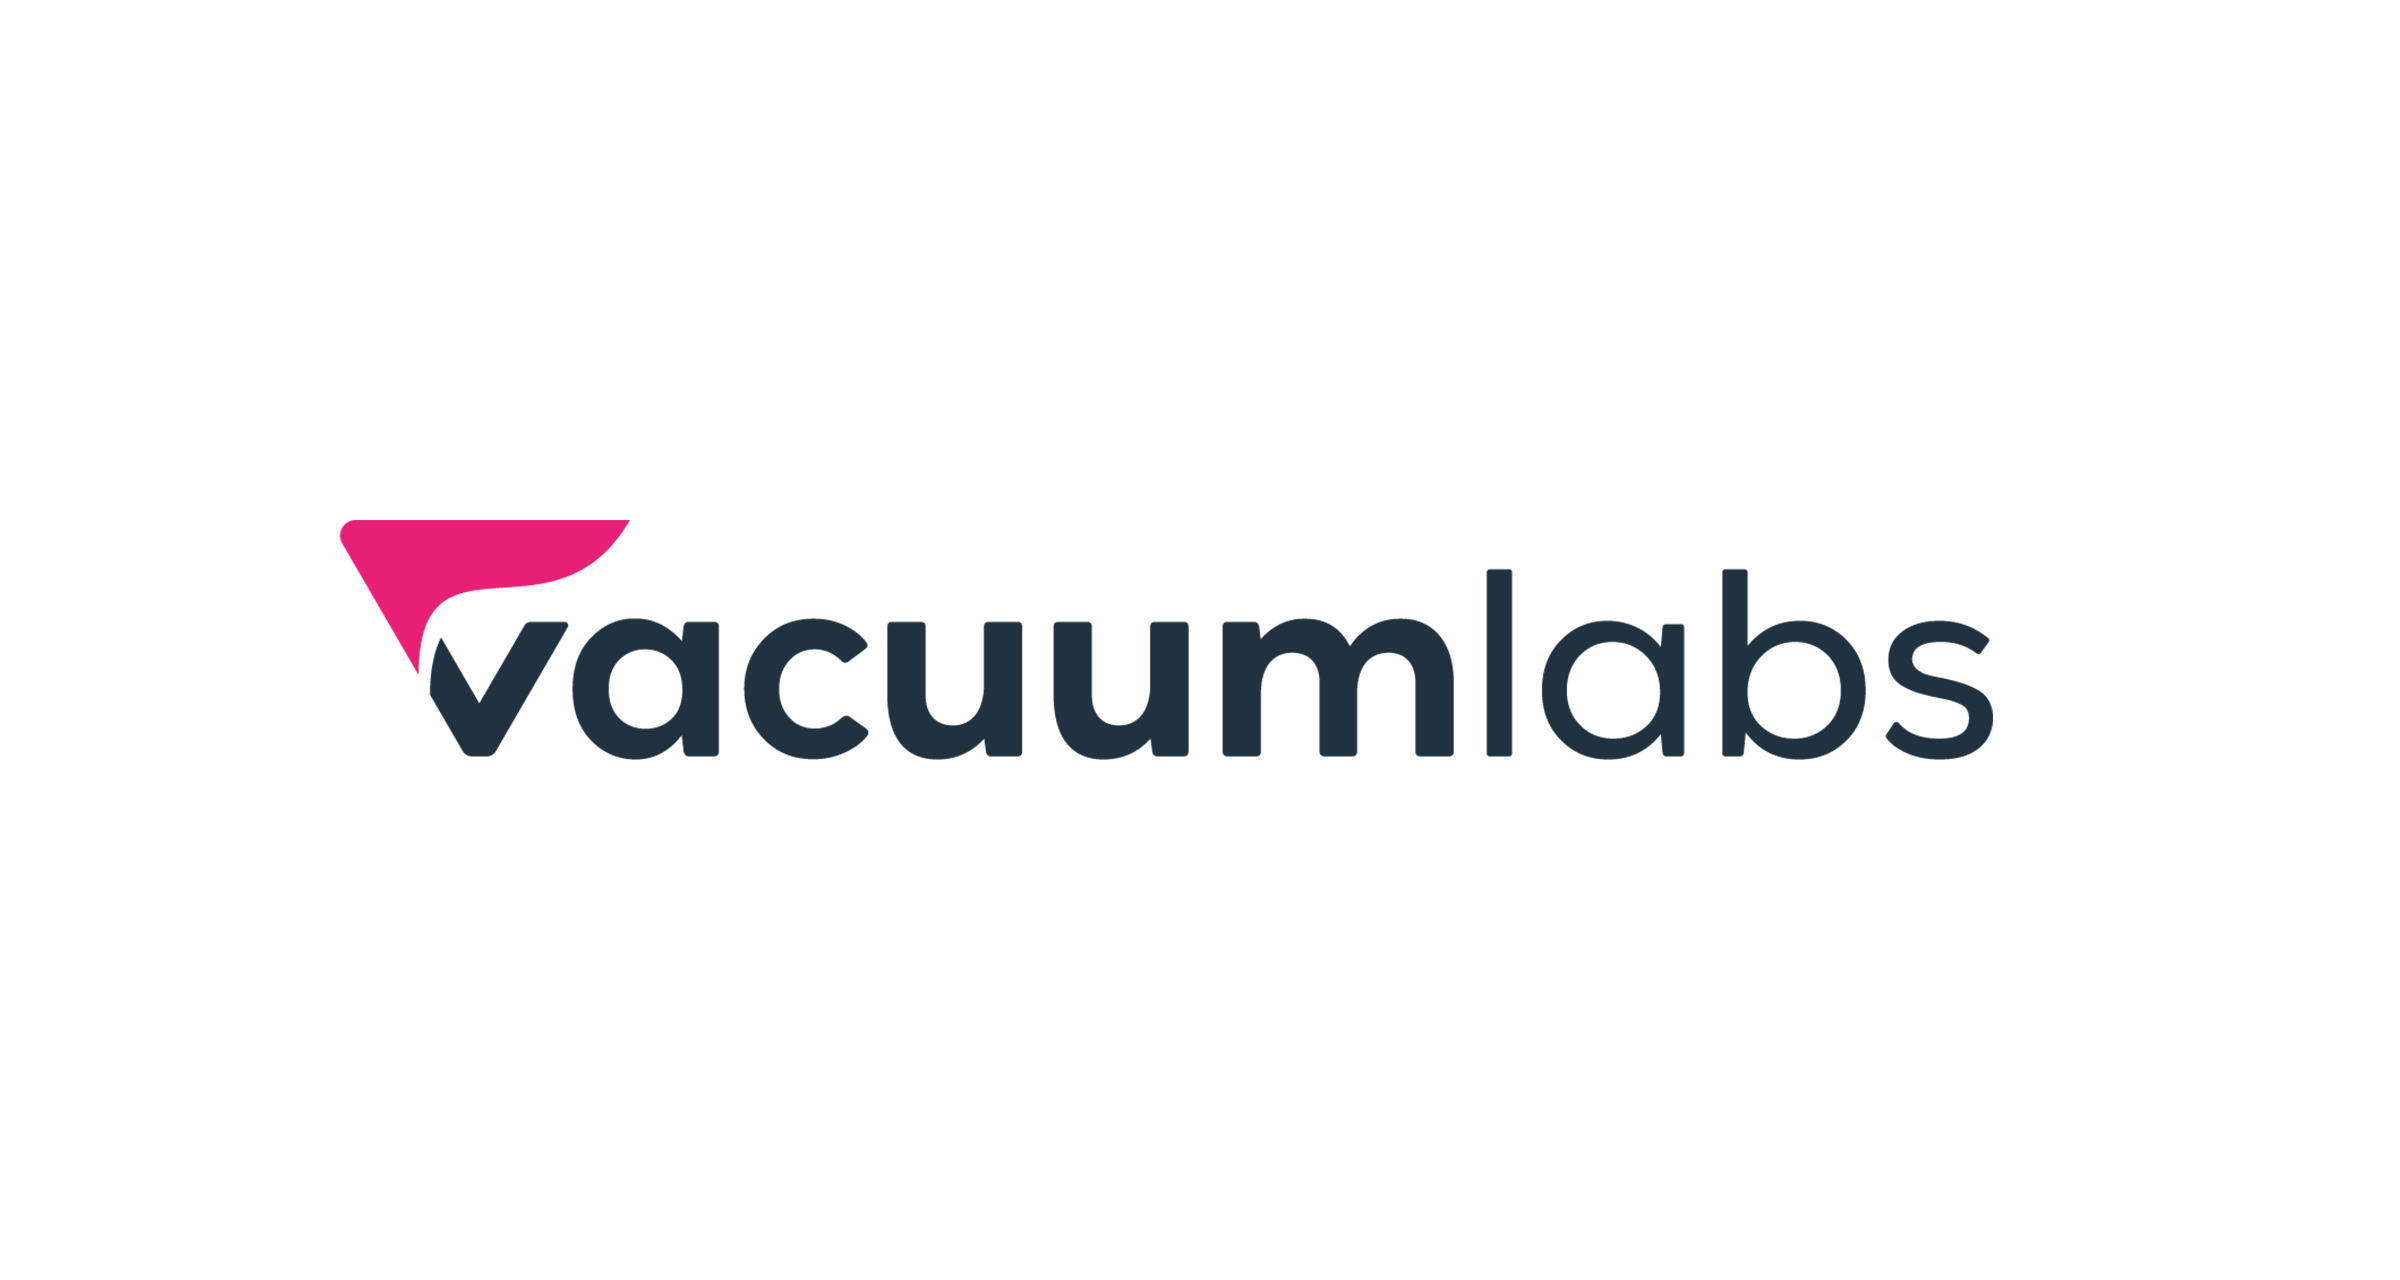 Vacuumlabs to Partner with Global Processing Services (GPS)